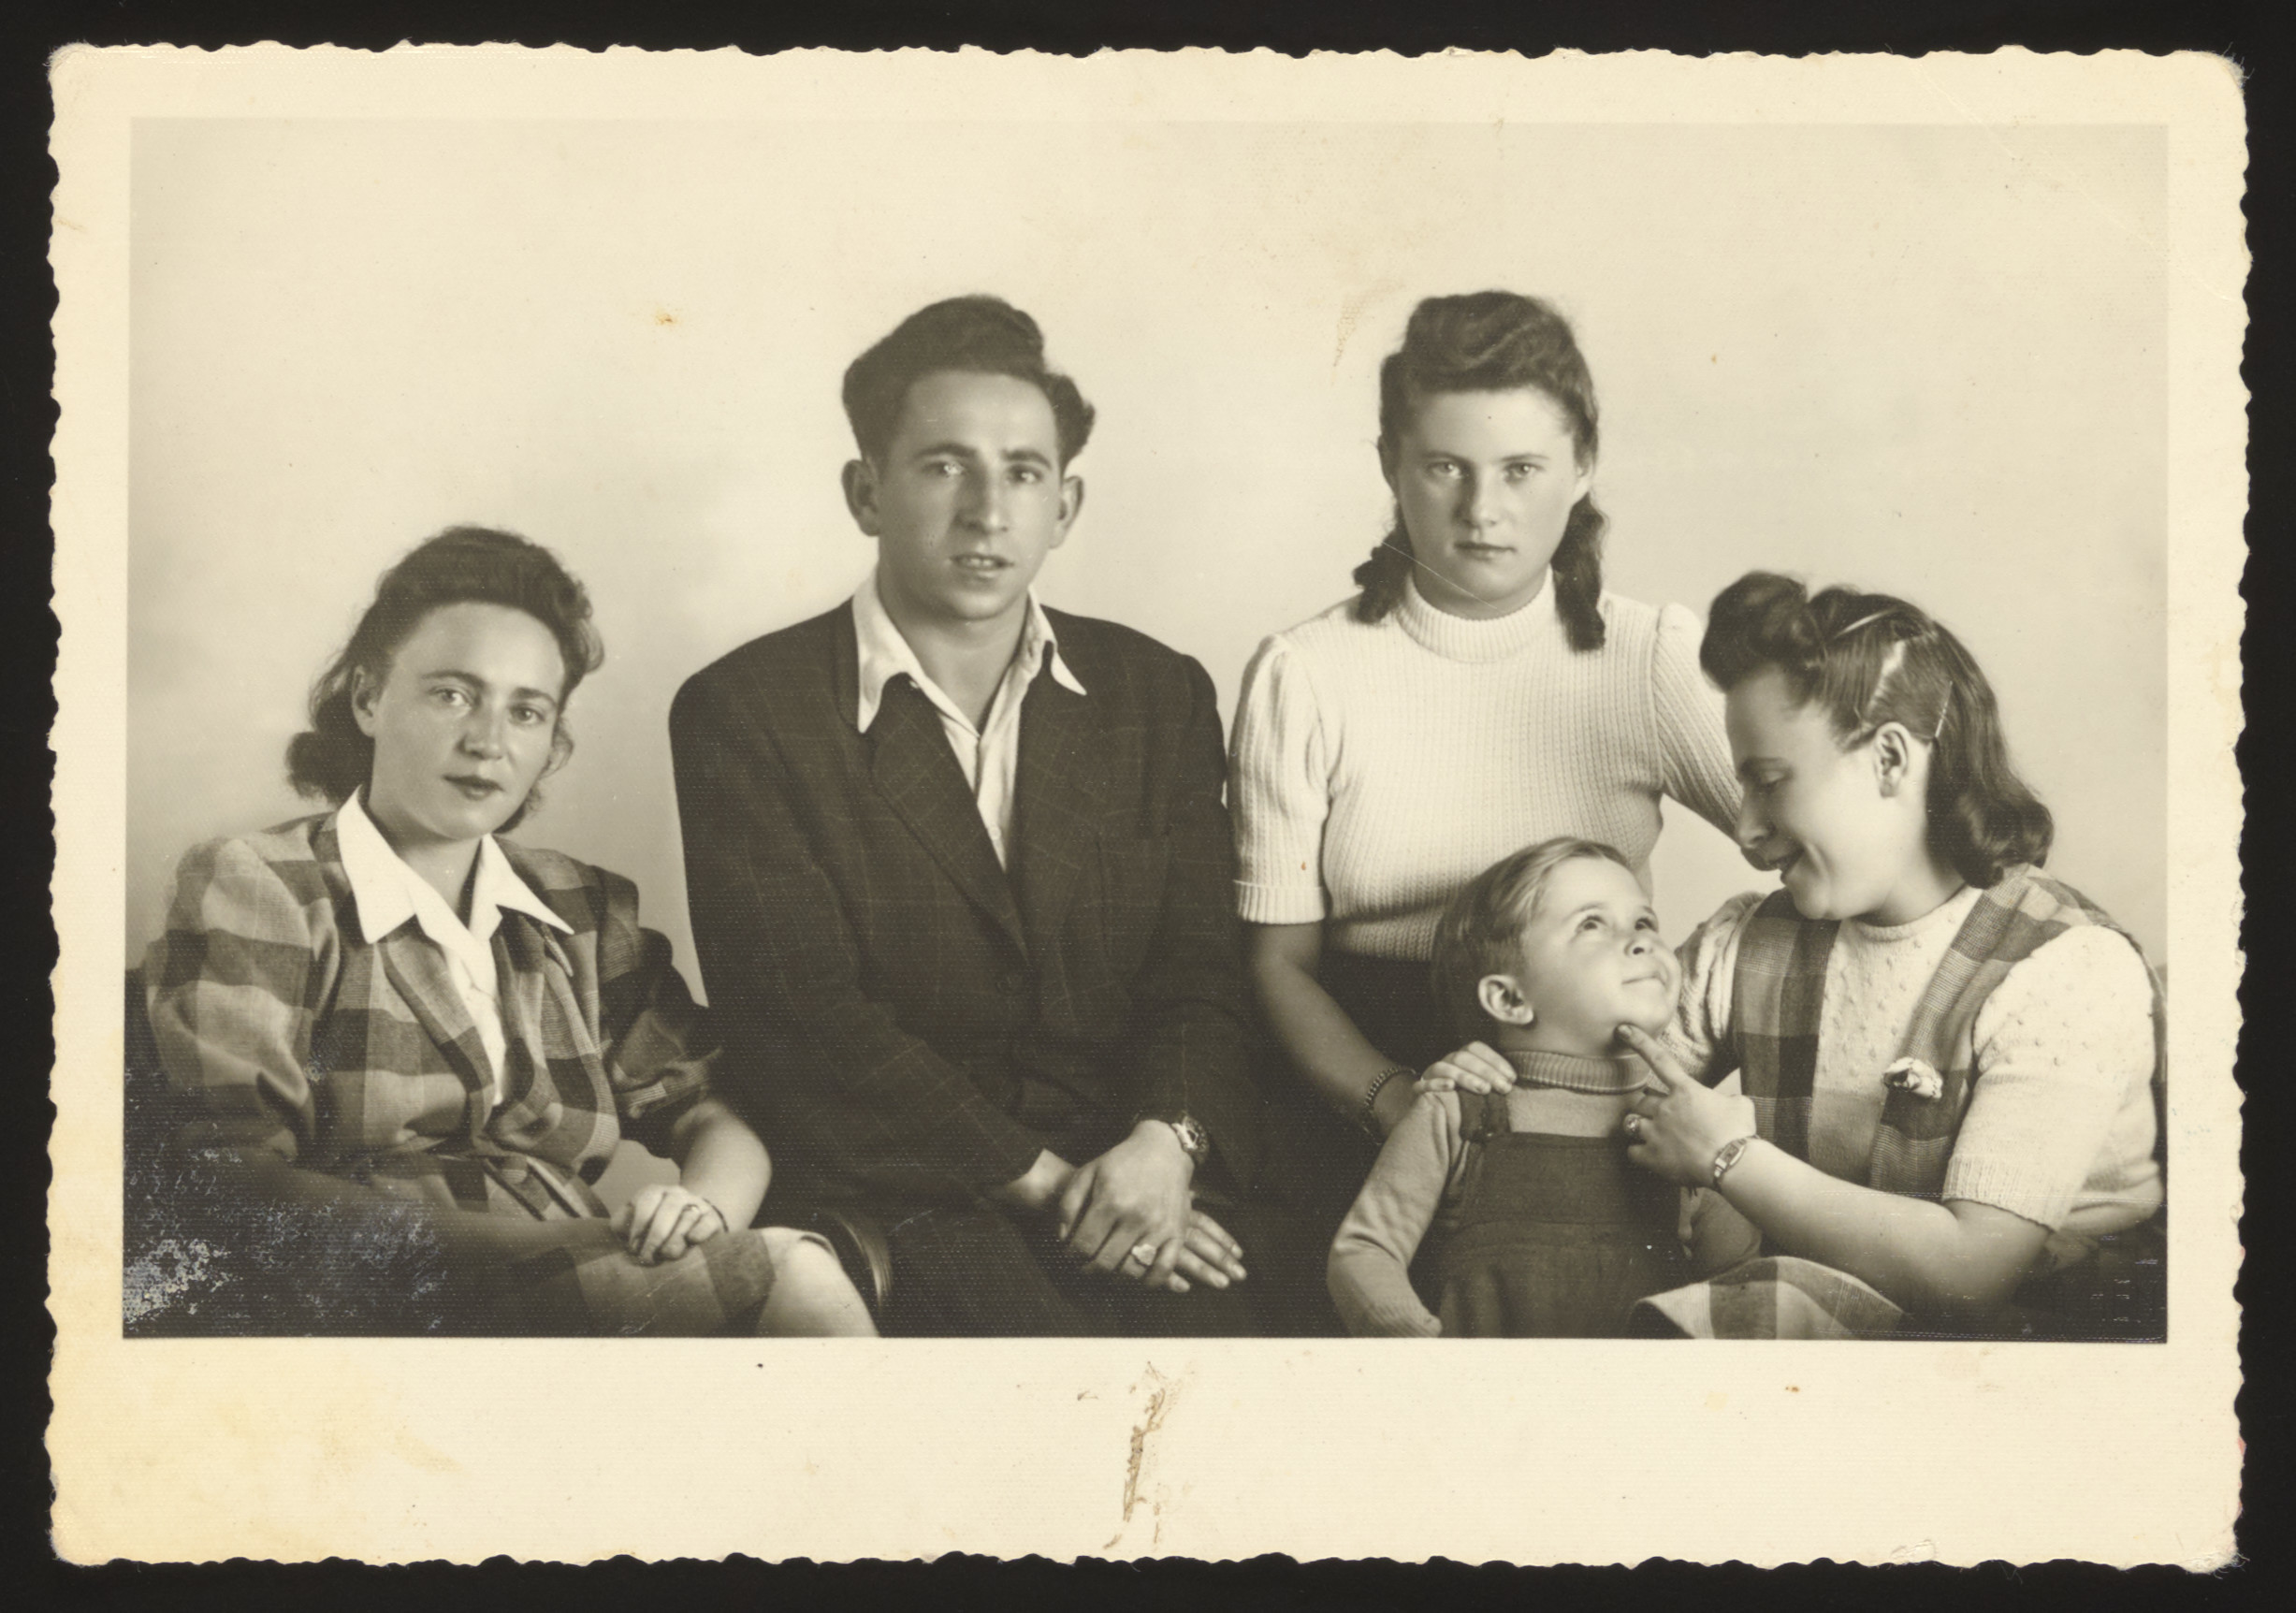 Group portrait of a Jewish family living in Munich after the war.  Pictured are (from left) Lifcia Najman, David Birenbaum (Lifcia's cousin), Gitl Najman Wolke (Lifcia's sister), Charles Silver (Lifcia's nephew), Etel Najman Silver (Lifcia's sister).